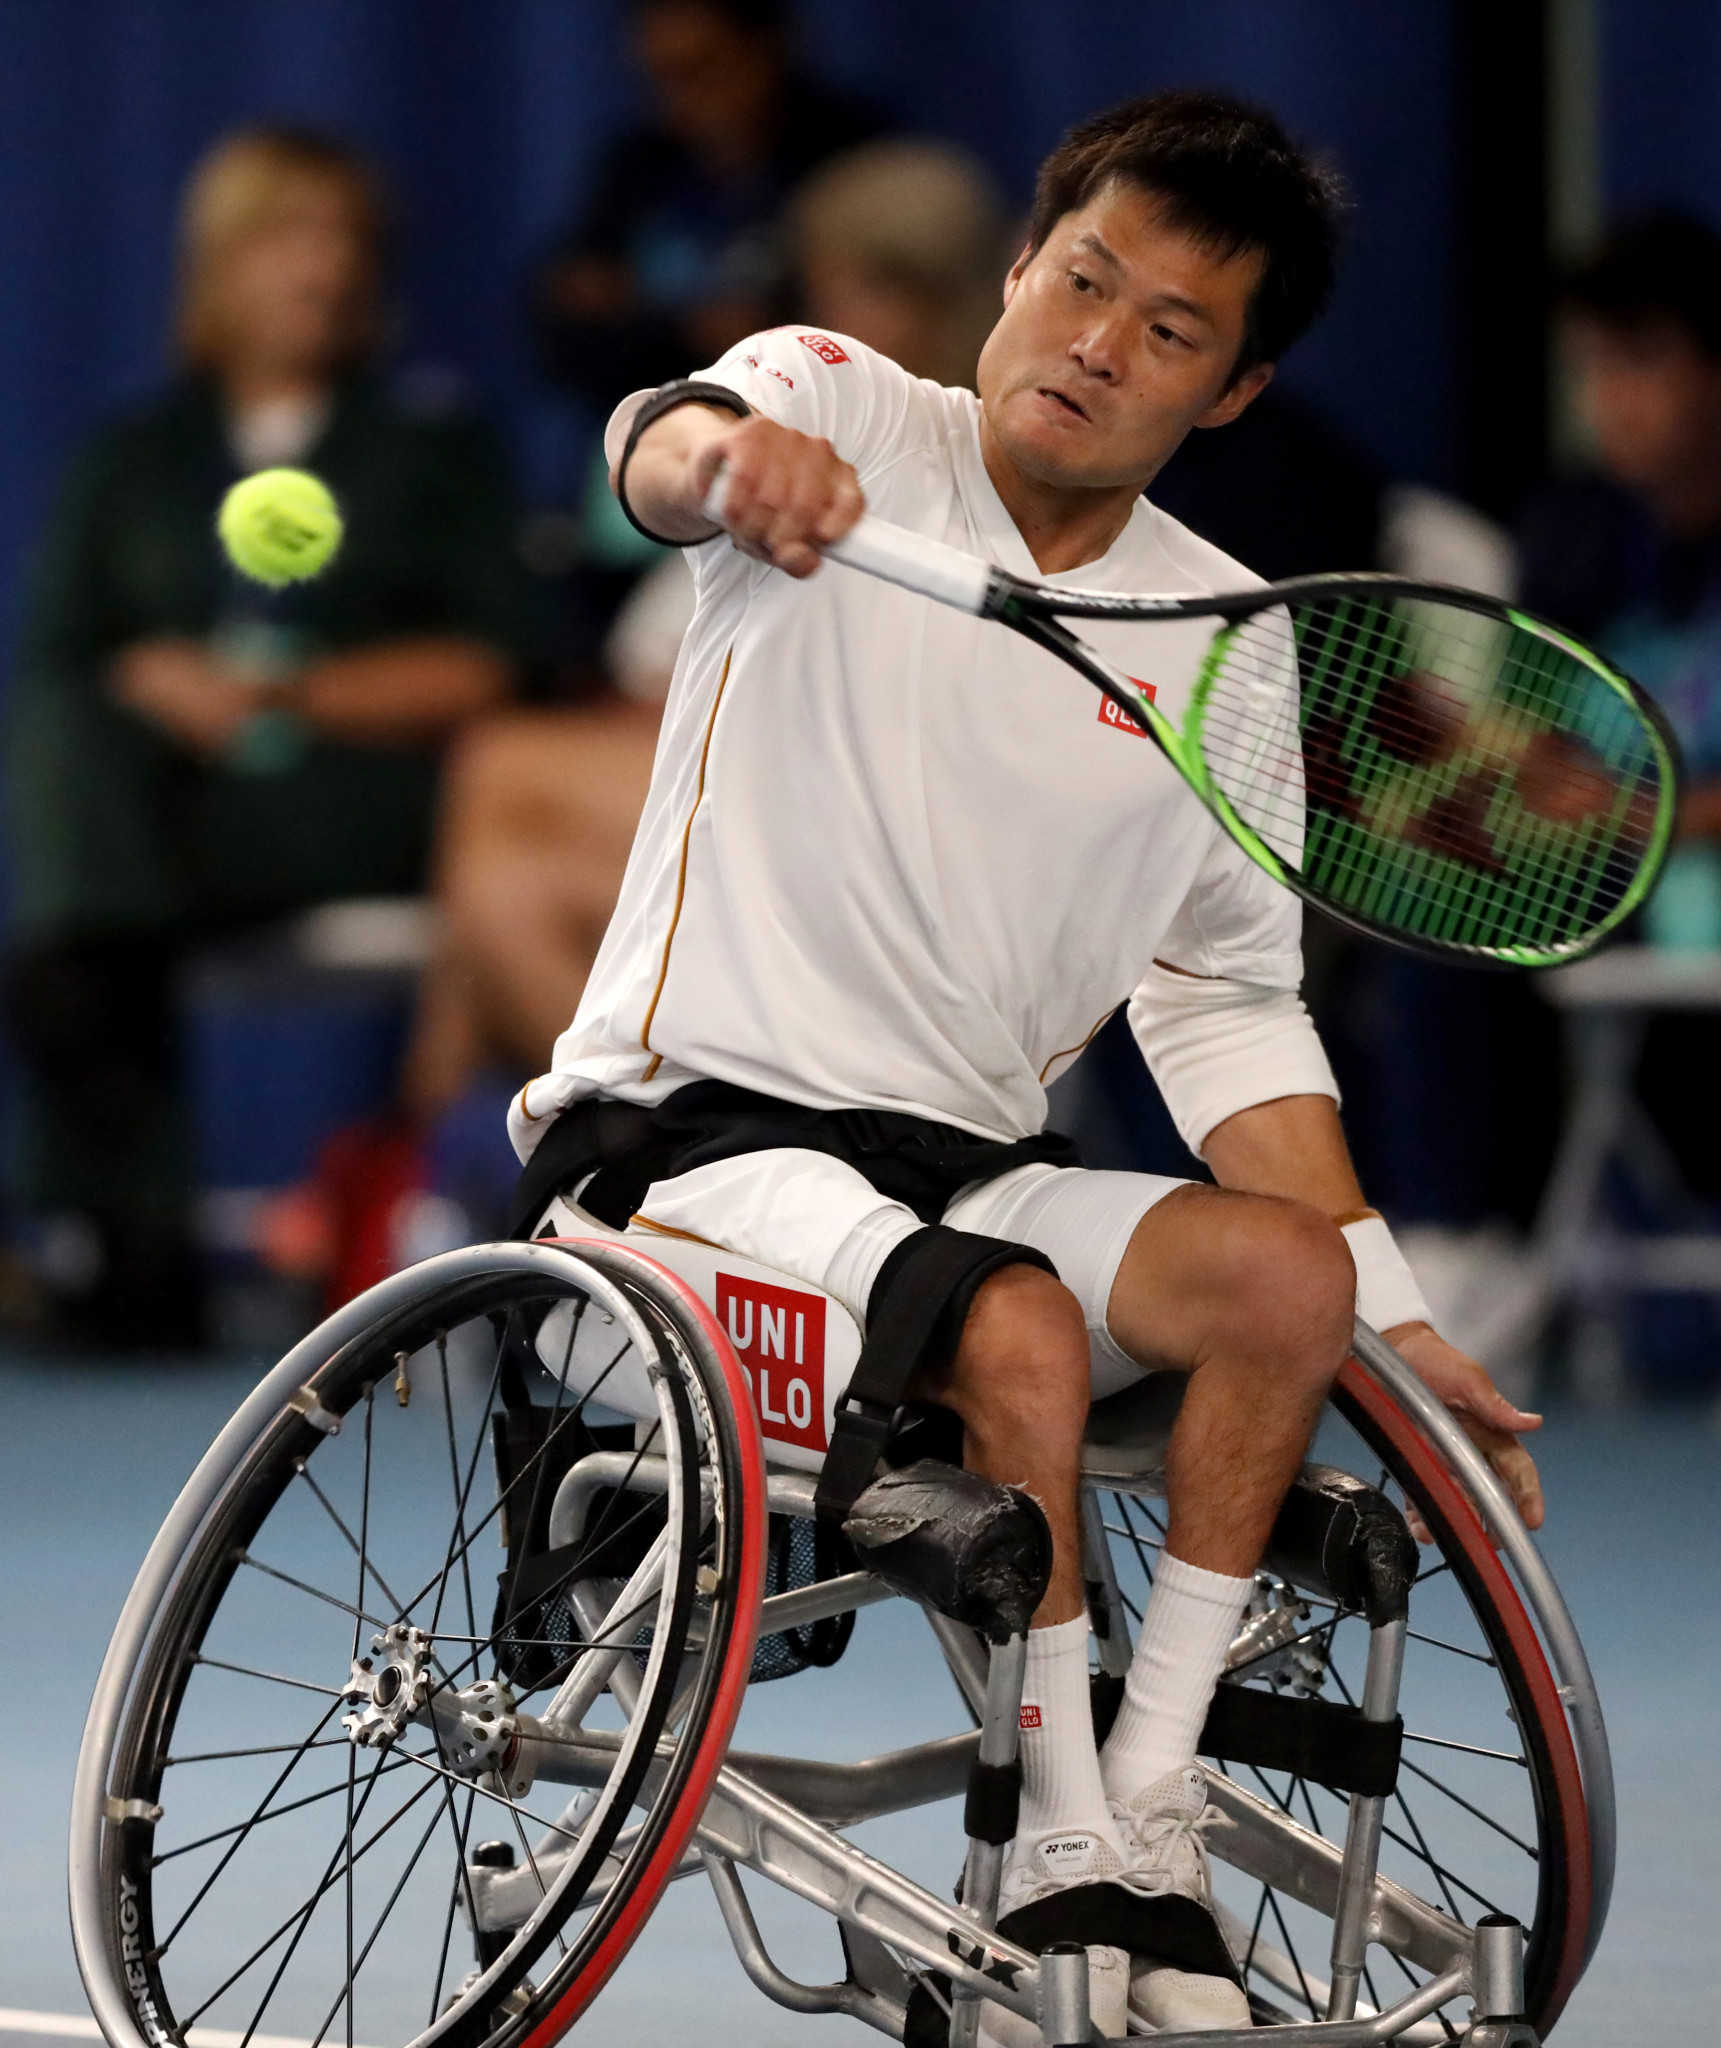 A survey of 3,000 Japanese people by Dentsu showed that 23 per cent of the population could name double Paralympic tennis champion and multiple Grand Slam winner Shingo Kuneida ©Getty Images